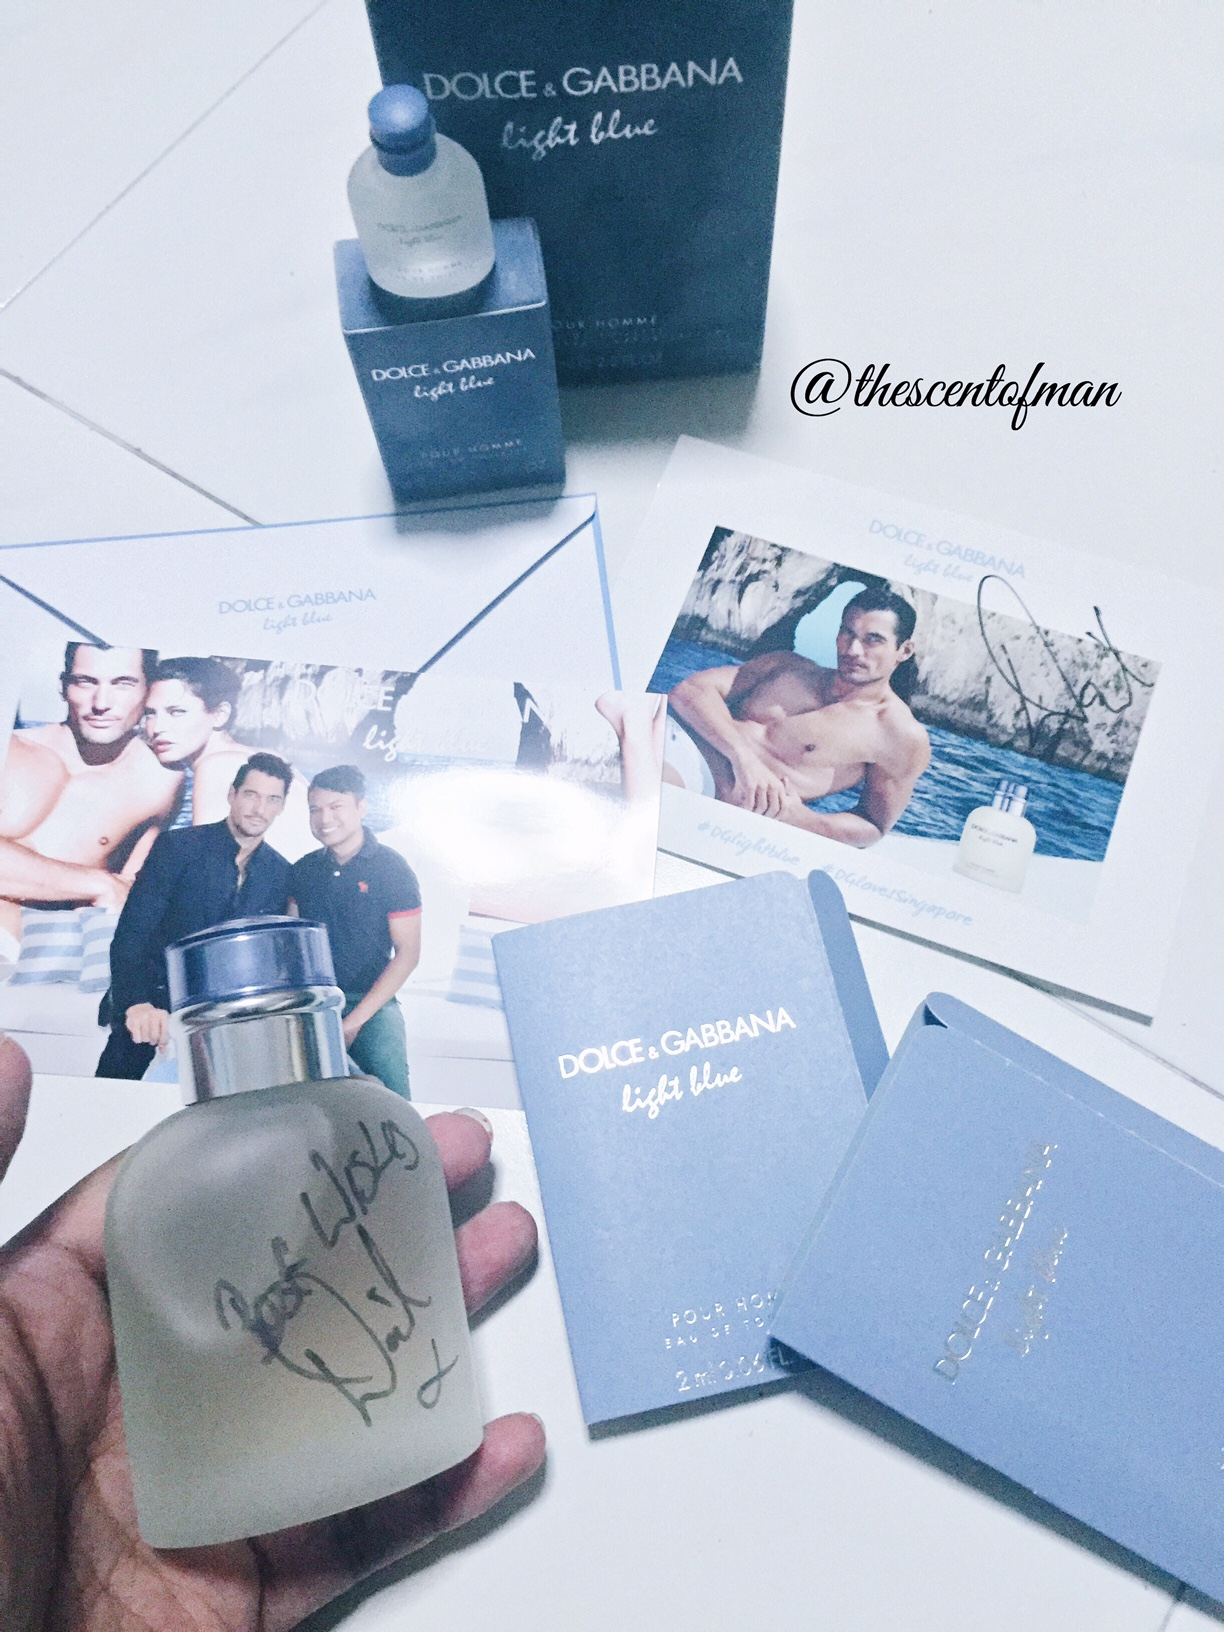 Dolce Gabbana Light Blue Pour Homme Meet And Greet With David